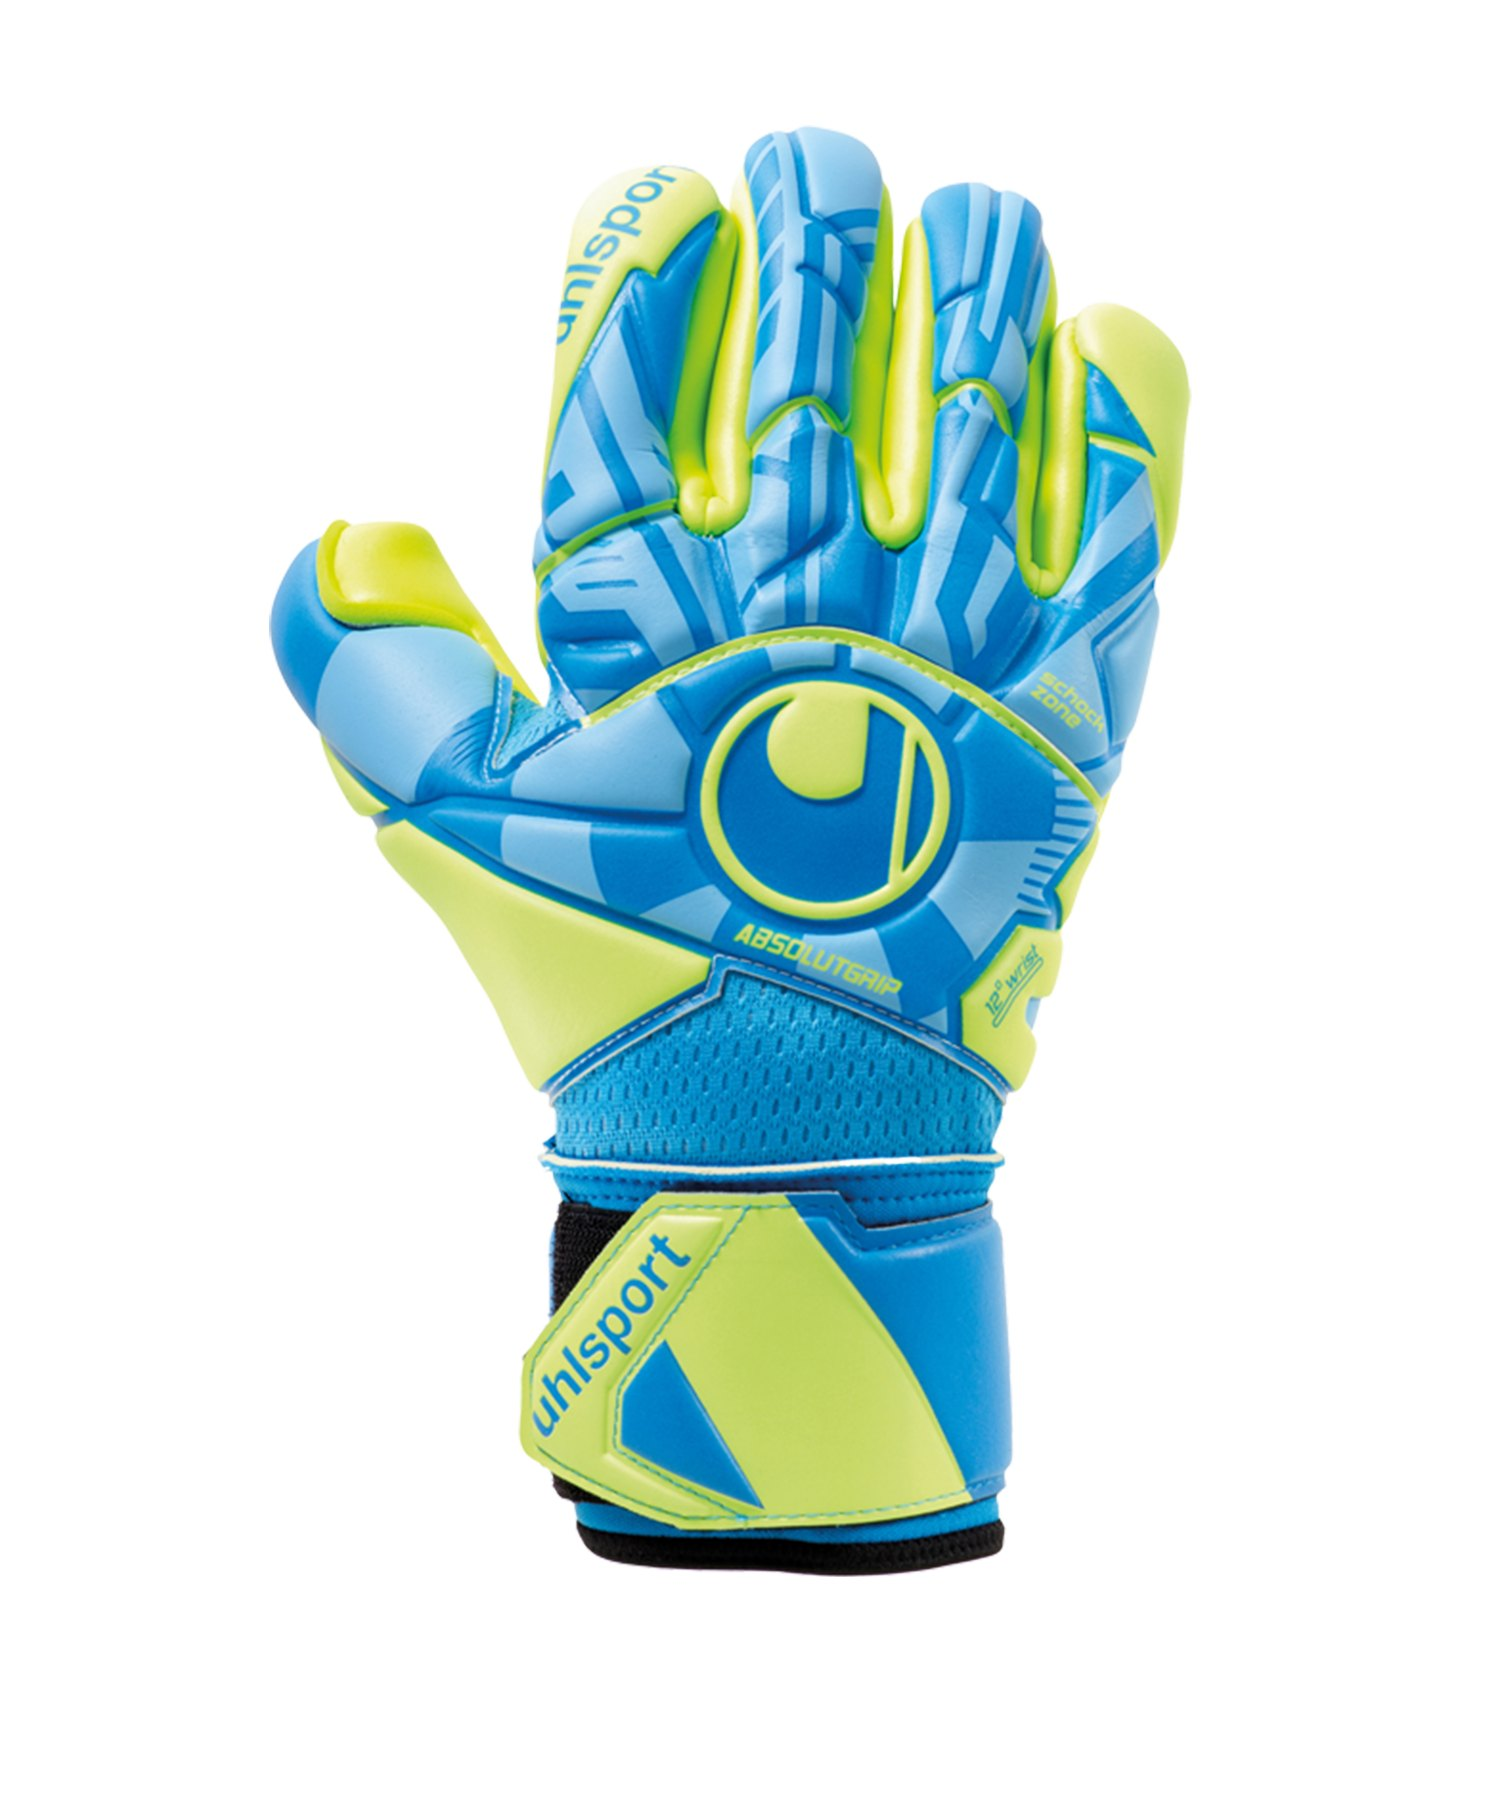 Uhlsport Radar Control Absolutgrip FS F01 - Blau